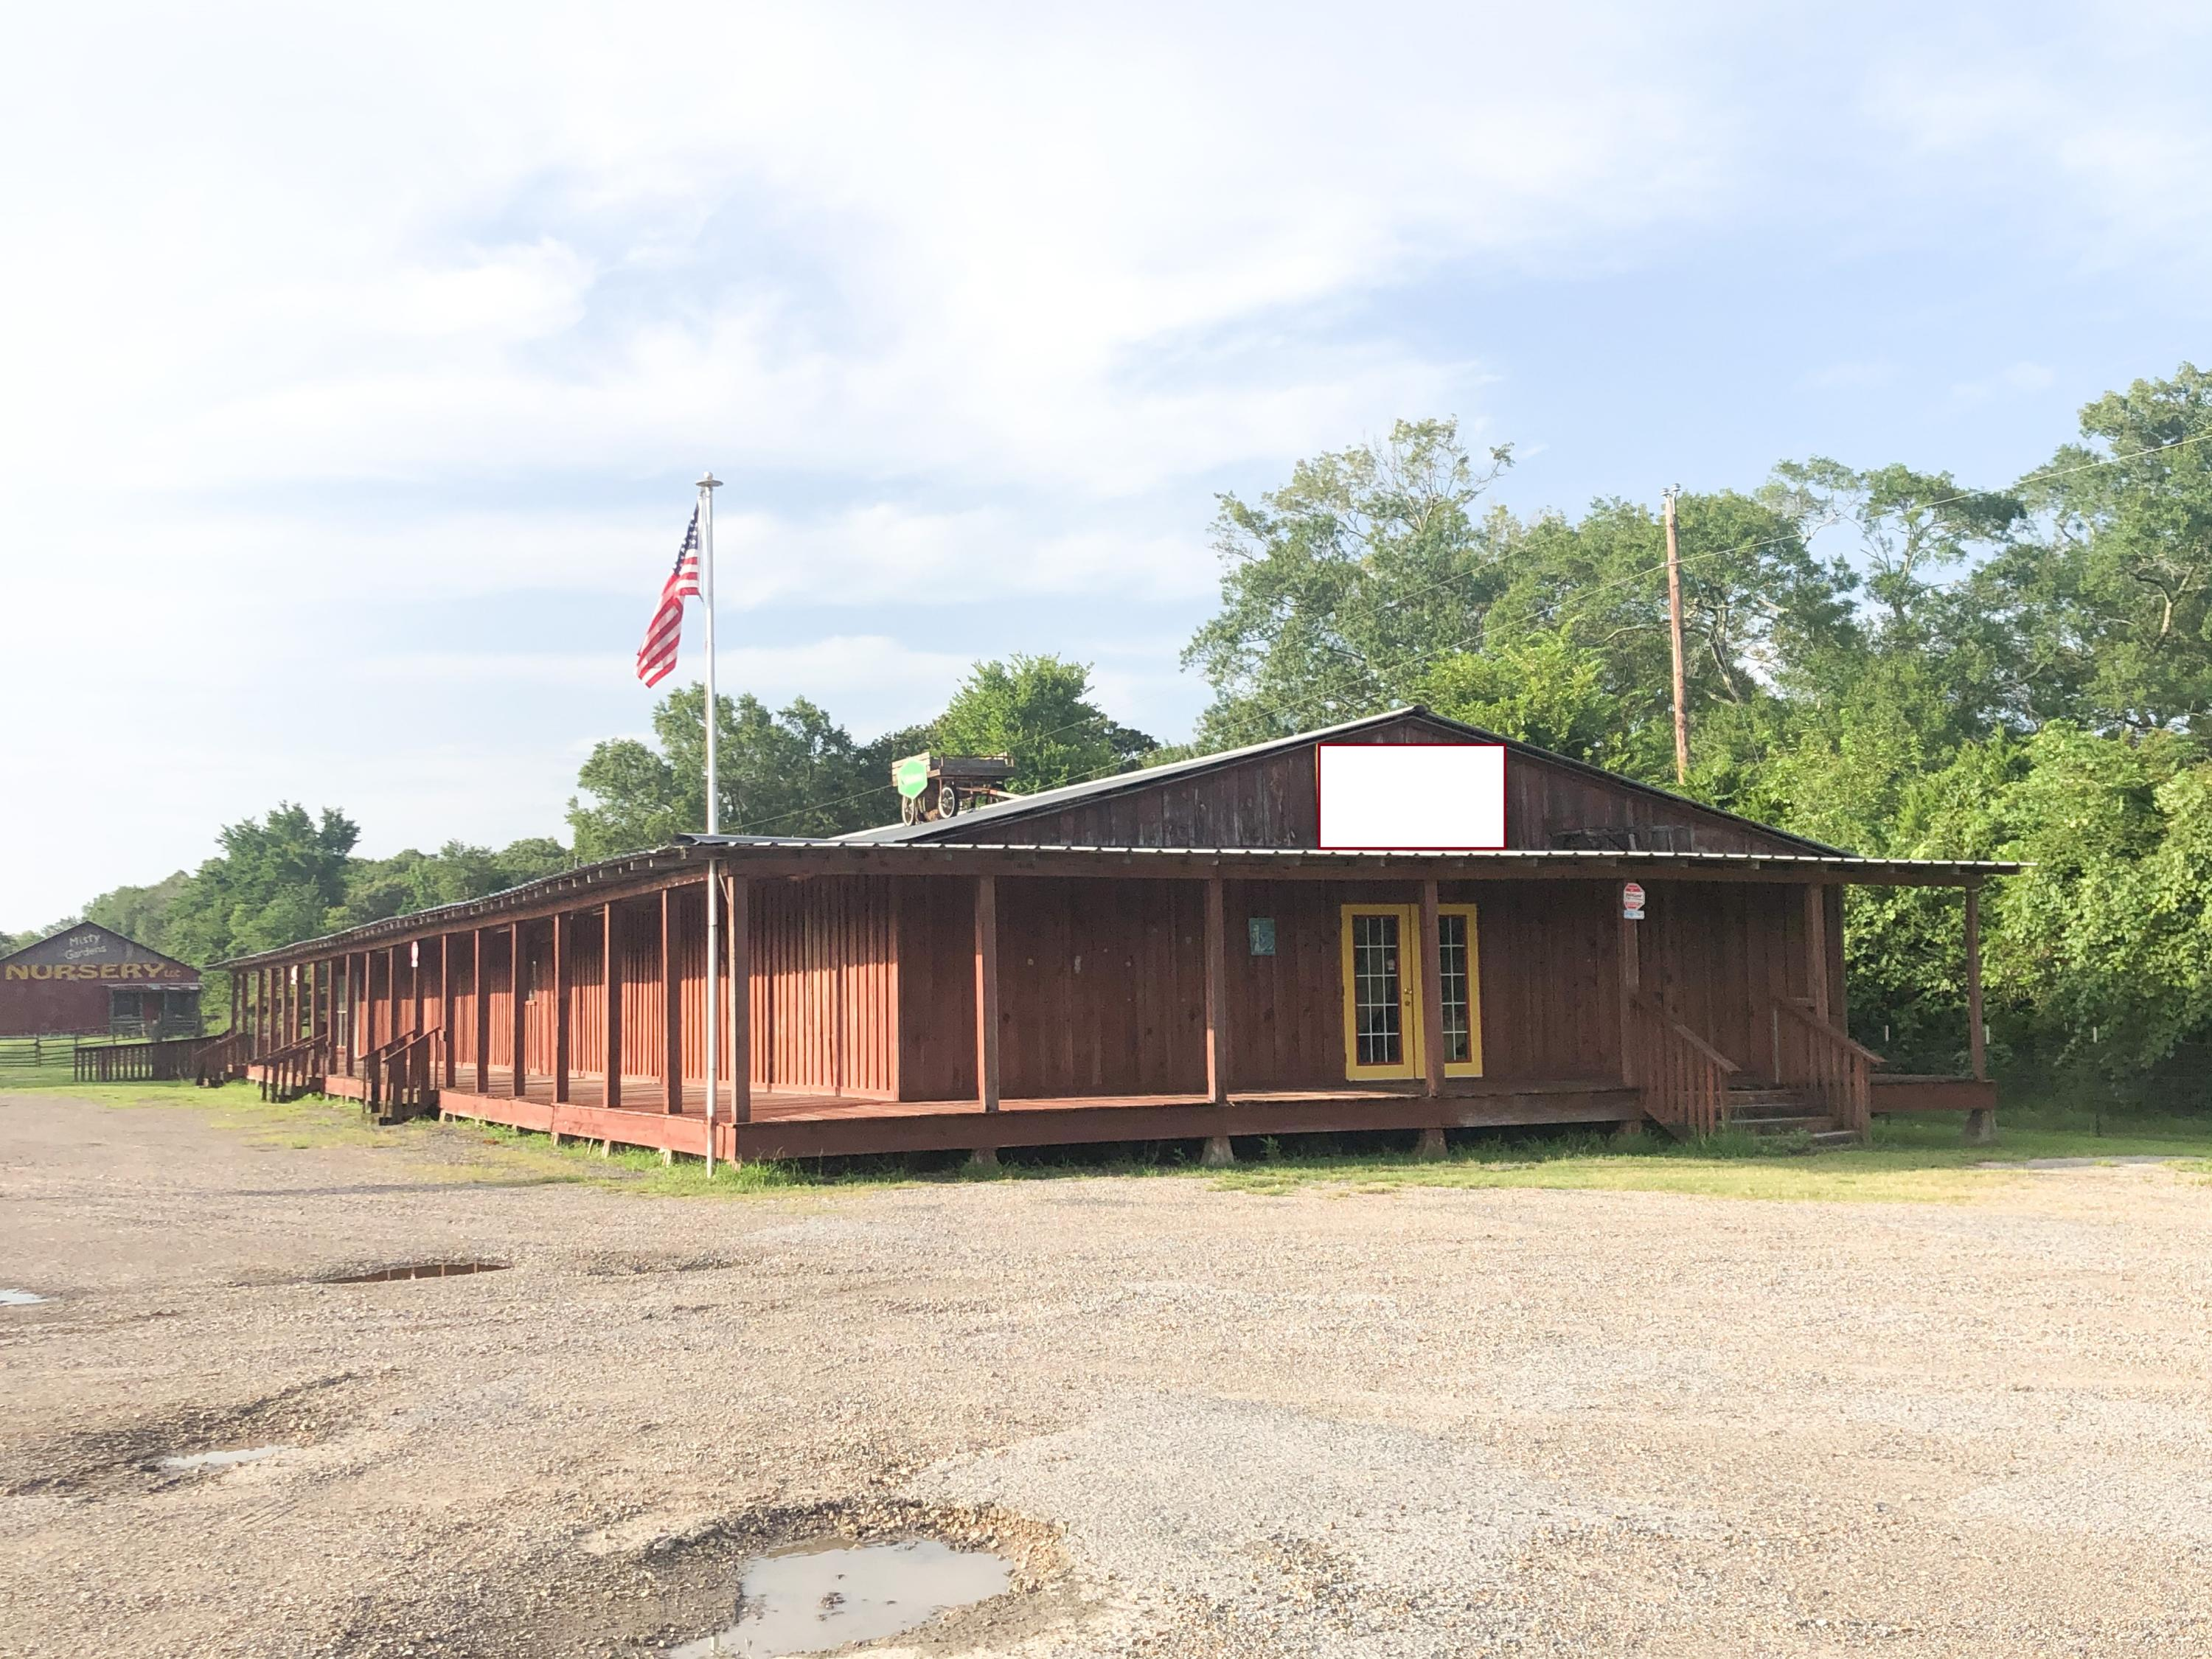 Lake Charles commercial property for sale, 600 Topsy Rd, Lake Charles LA - $547,000